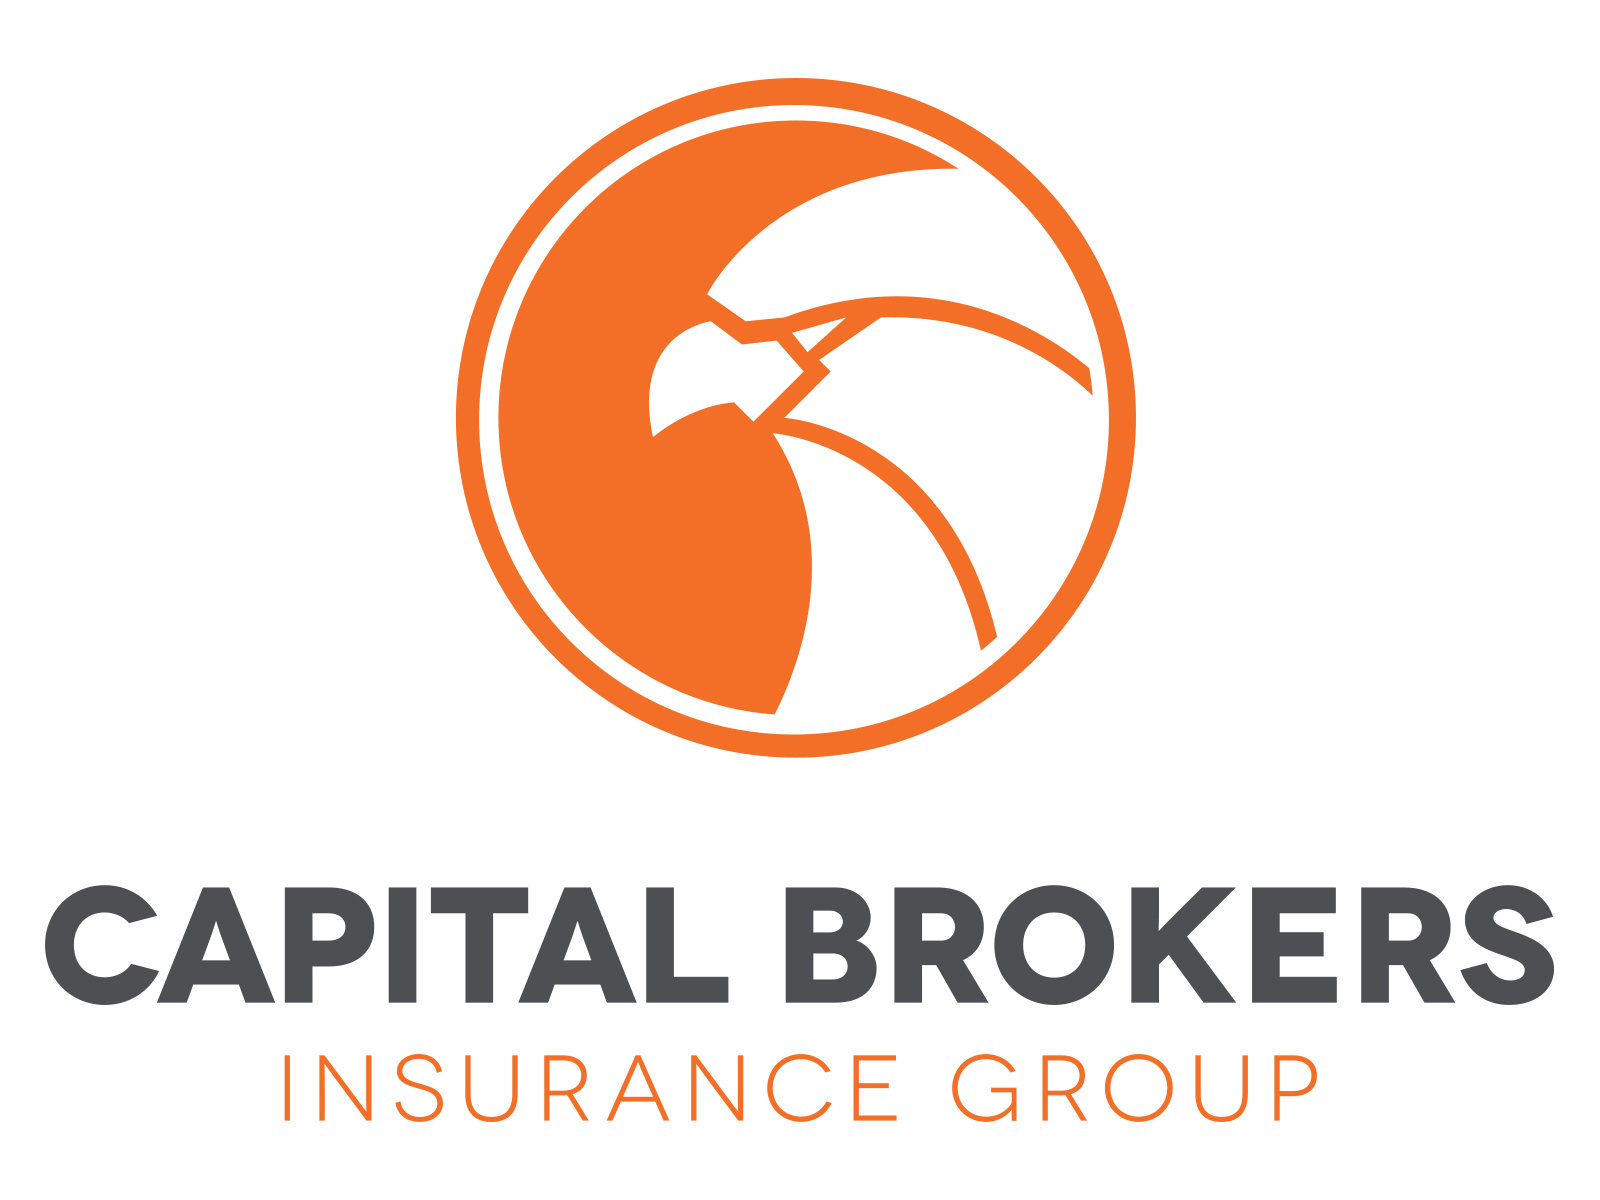 Capital Brokers Insurance Group